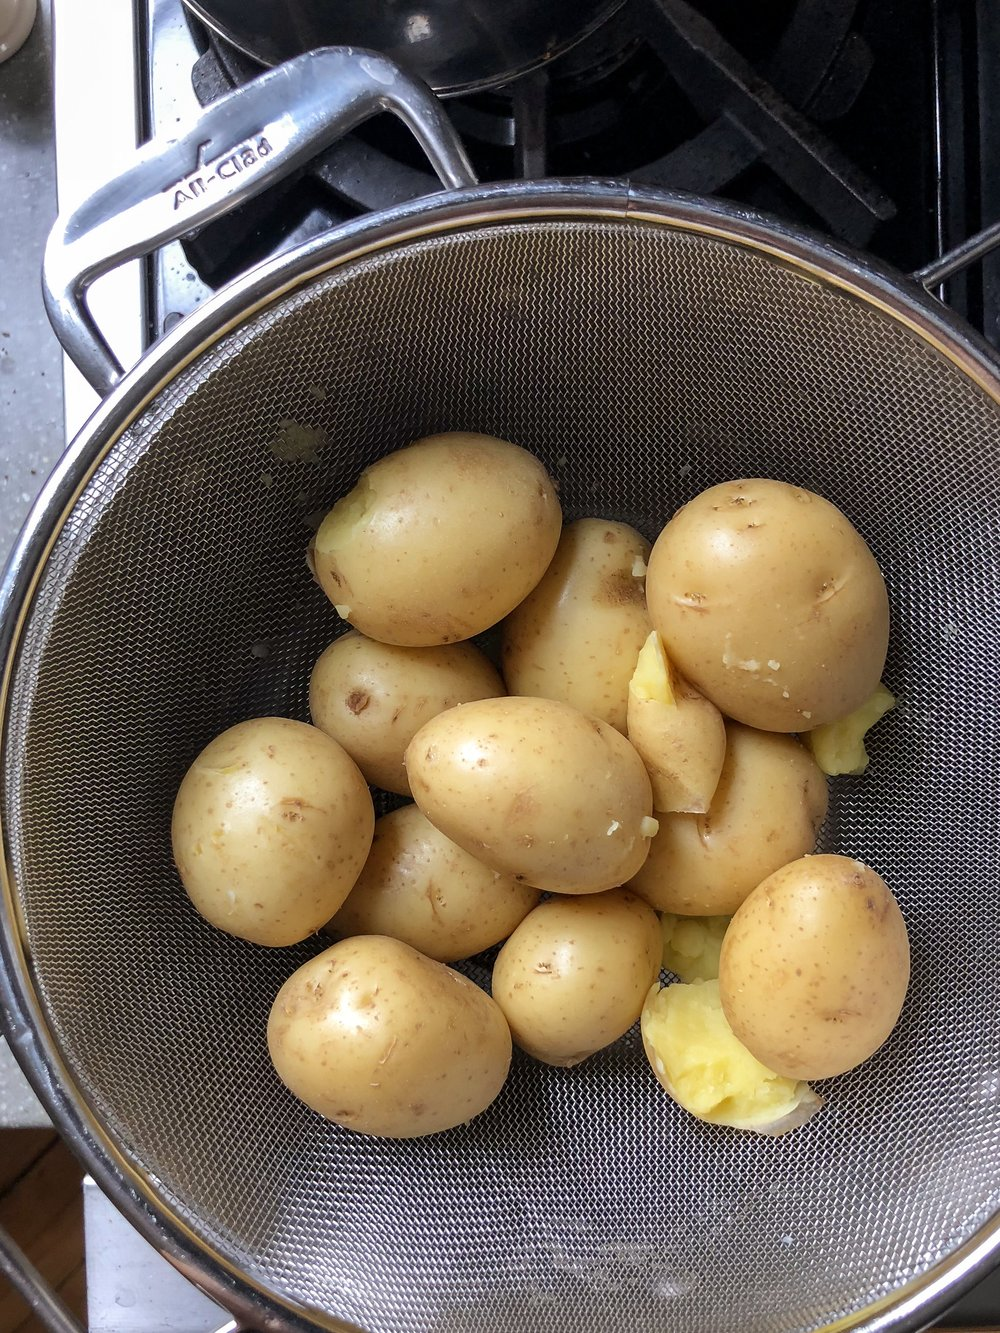 Make sure to allow potatoes to dry thoroughly.